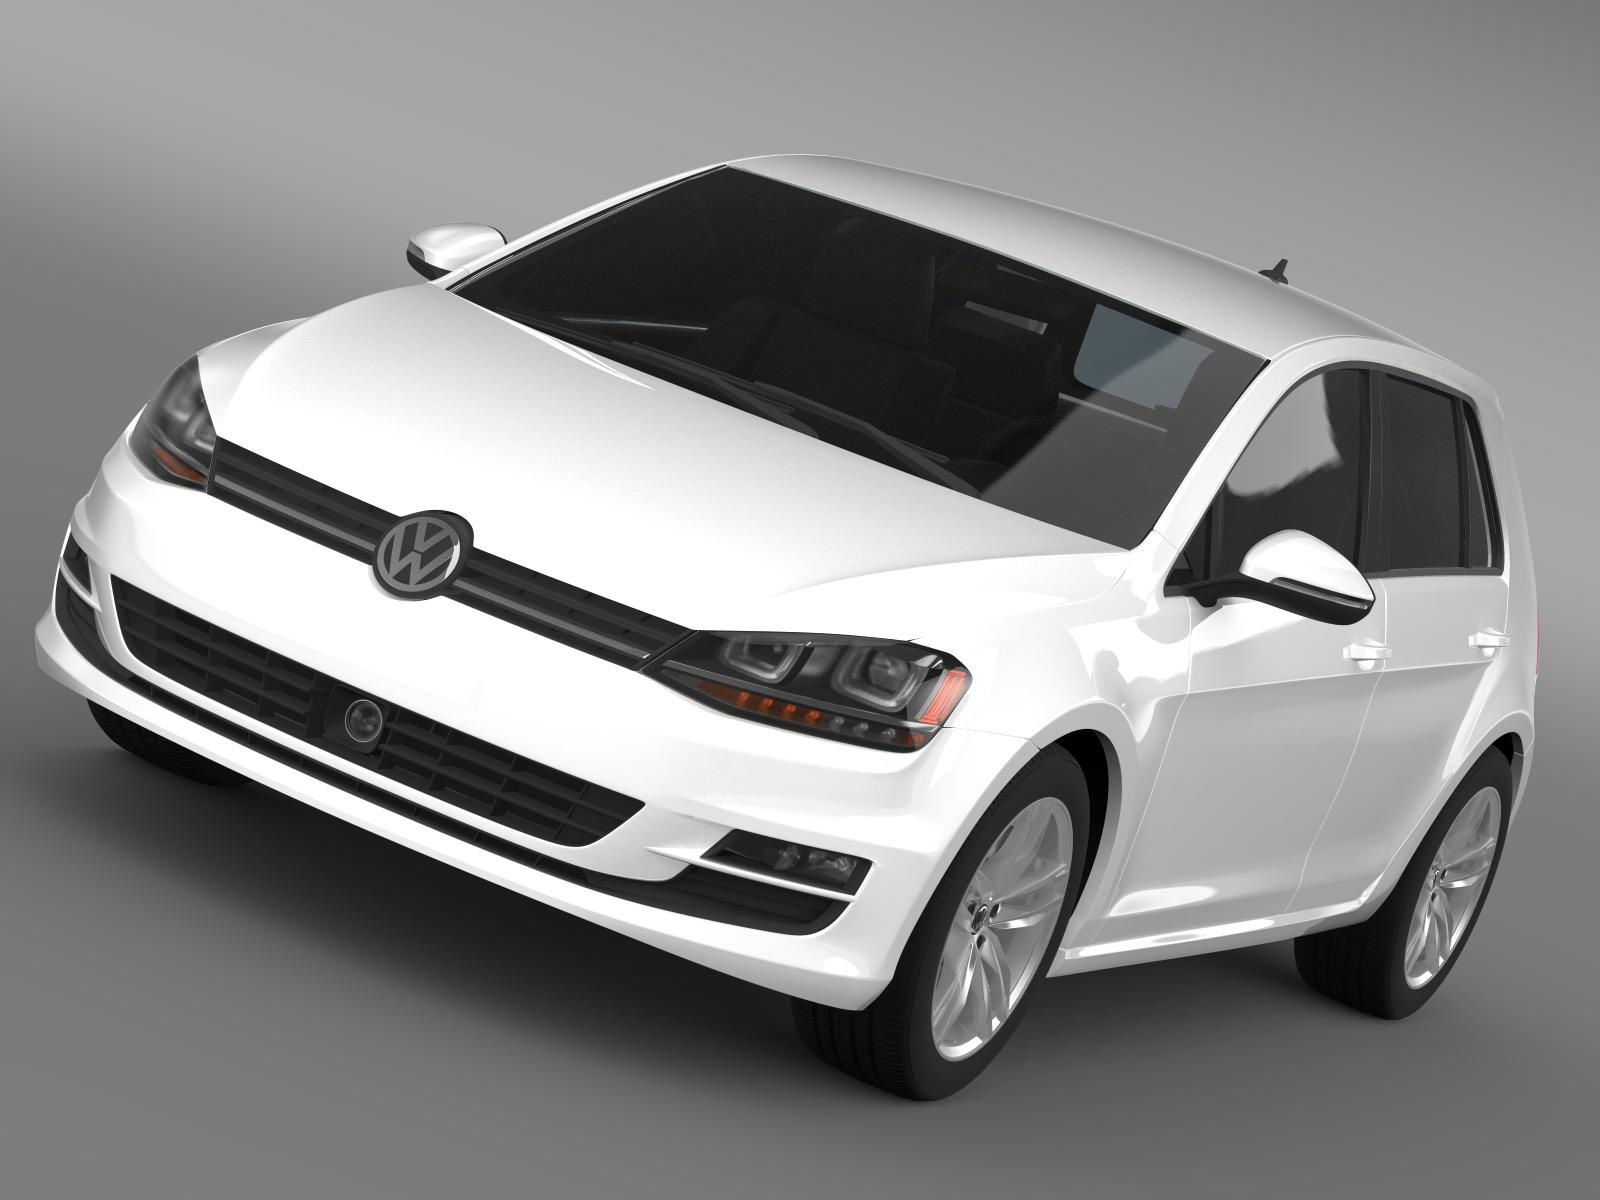 vw golf tsi bluemotion 5d typ 5g 2012 3d model 3ds max fbx c4d lwo ma mb hrc xsi obj 165065